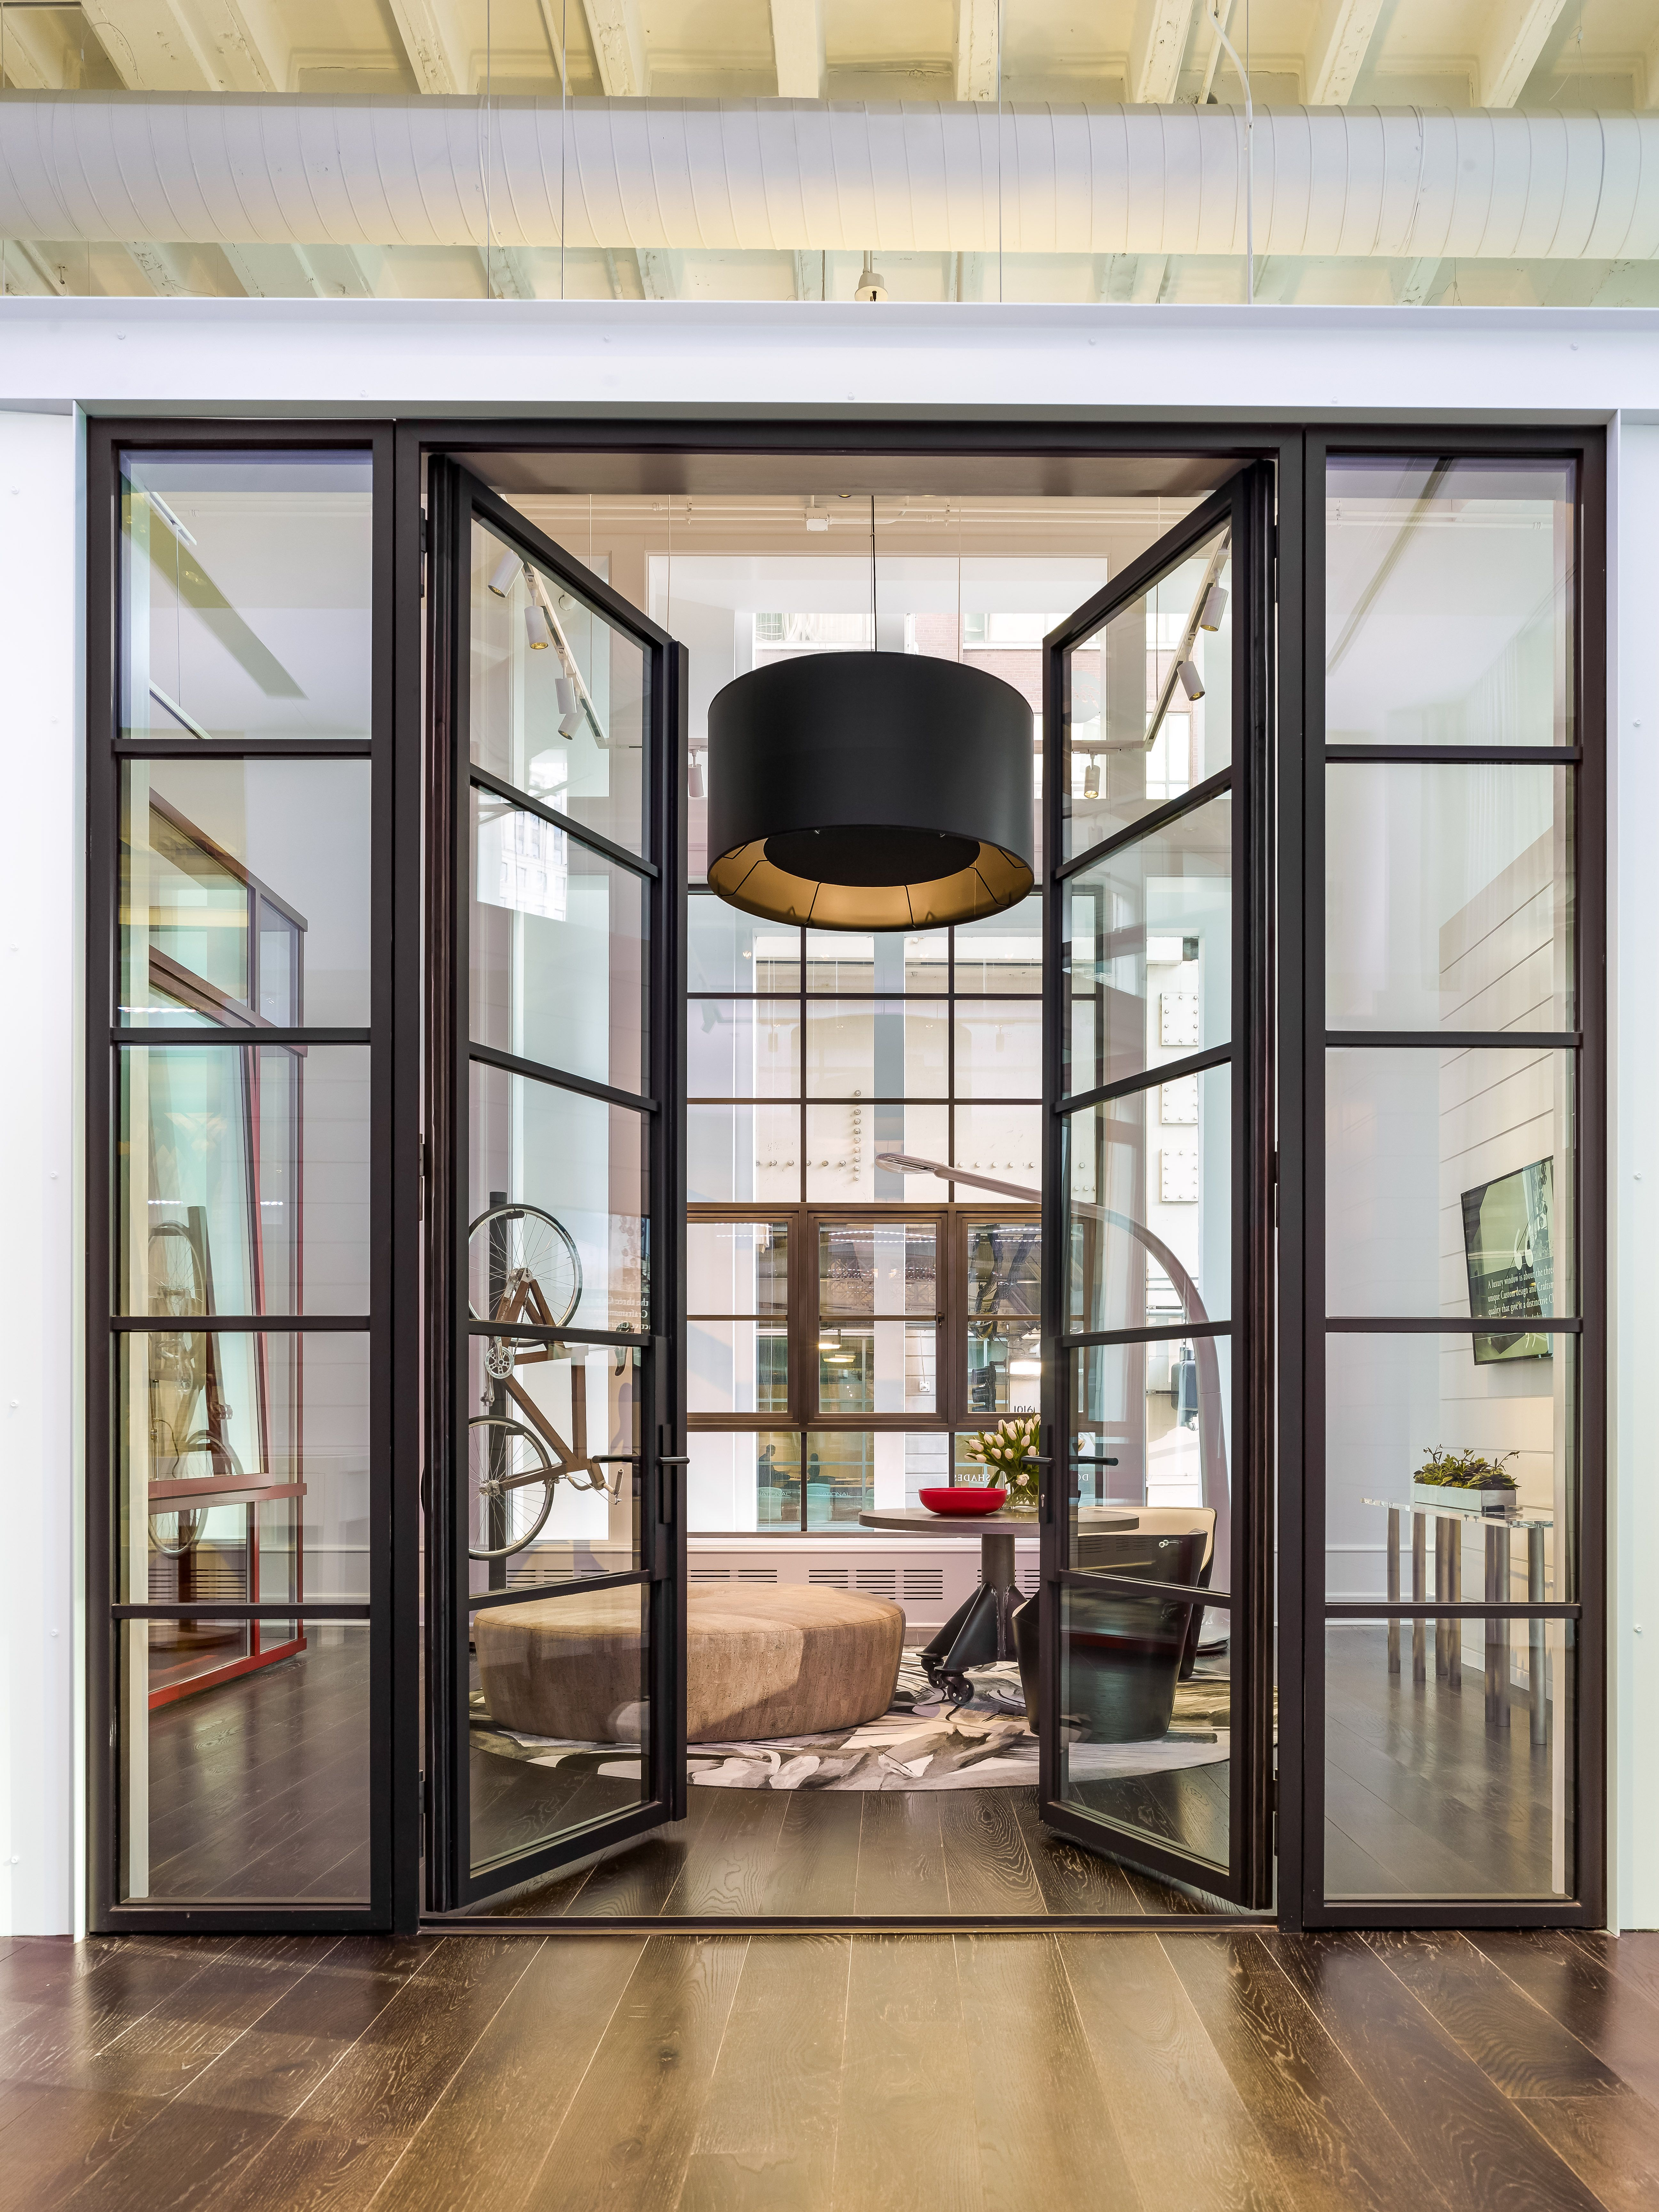 The Pella Crafted Luxury Showroom Artfully Displays Windows And Doors Within Six Style Vig French Doors Interior Discount Interior Doors Aluminium French Doors